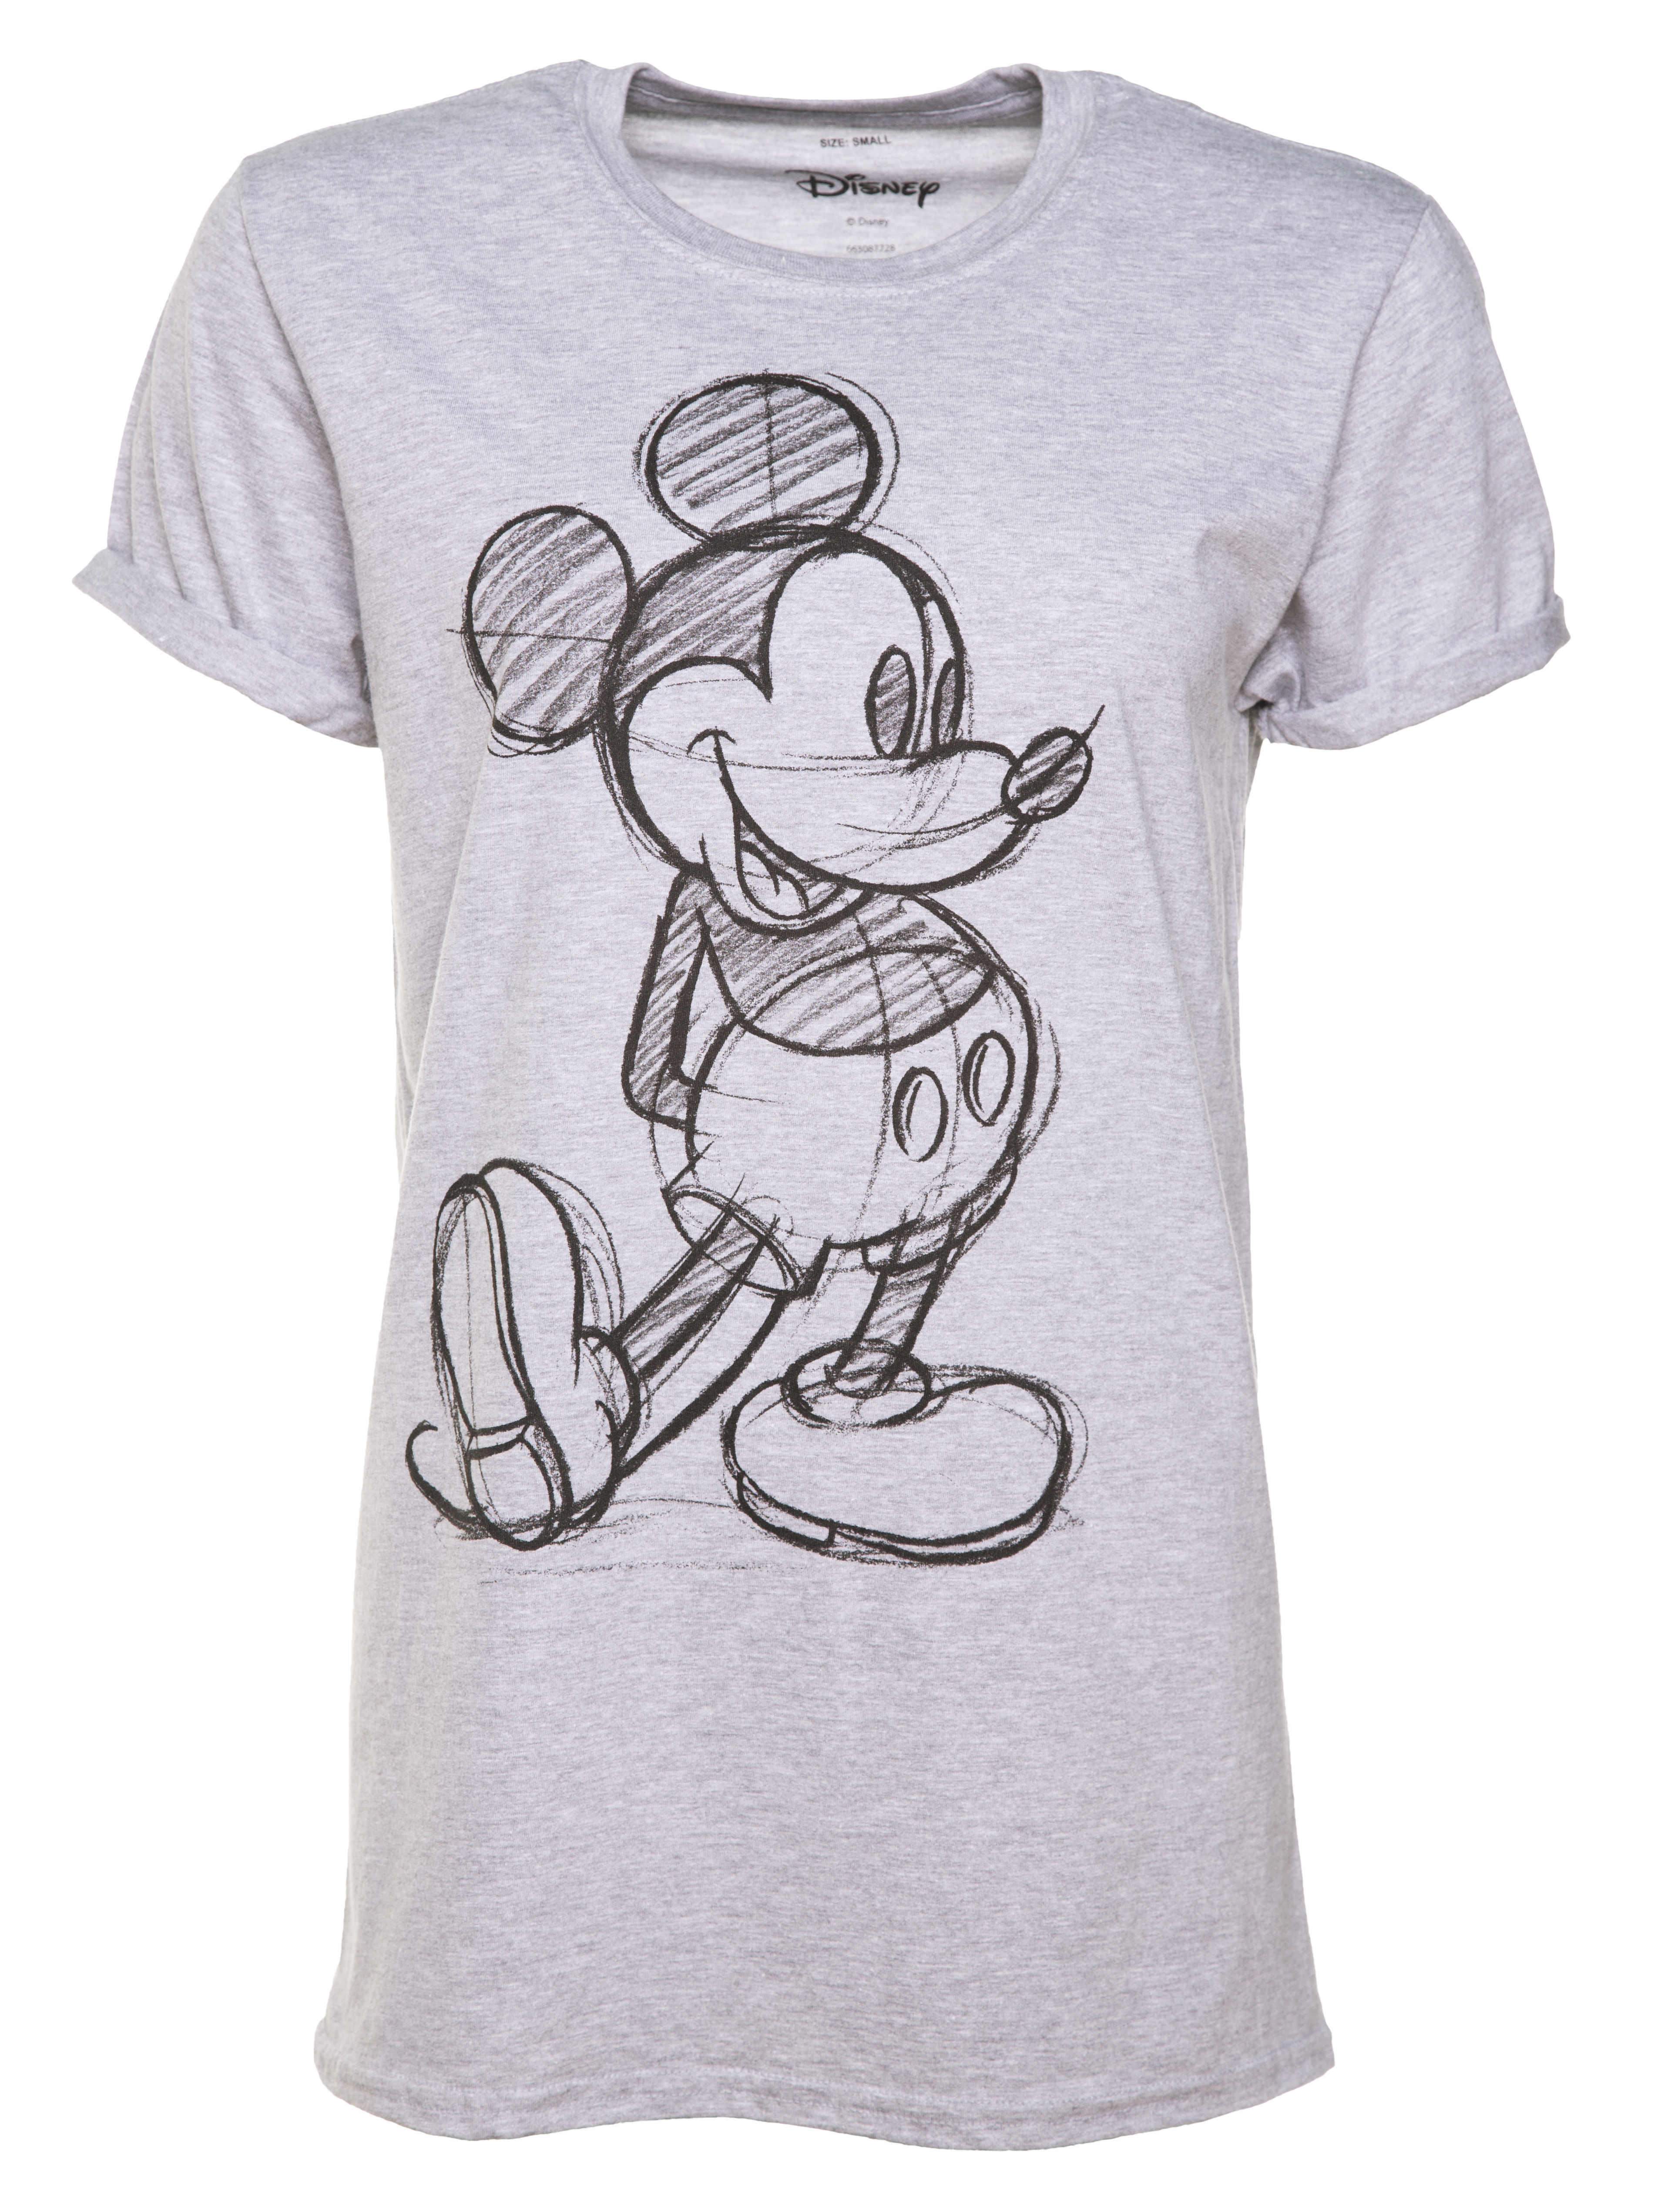 bd71ed3b Women's Grey Marl Vintage Disney Mickey Mouse Sketch Rolled Sleeve T-Shirt  - Made from 90% cotton, 10% polyester - Soft feel, lightweight tee - Runs  small ...